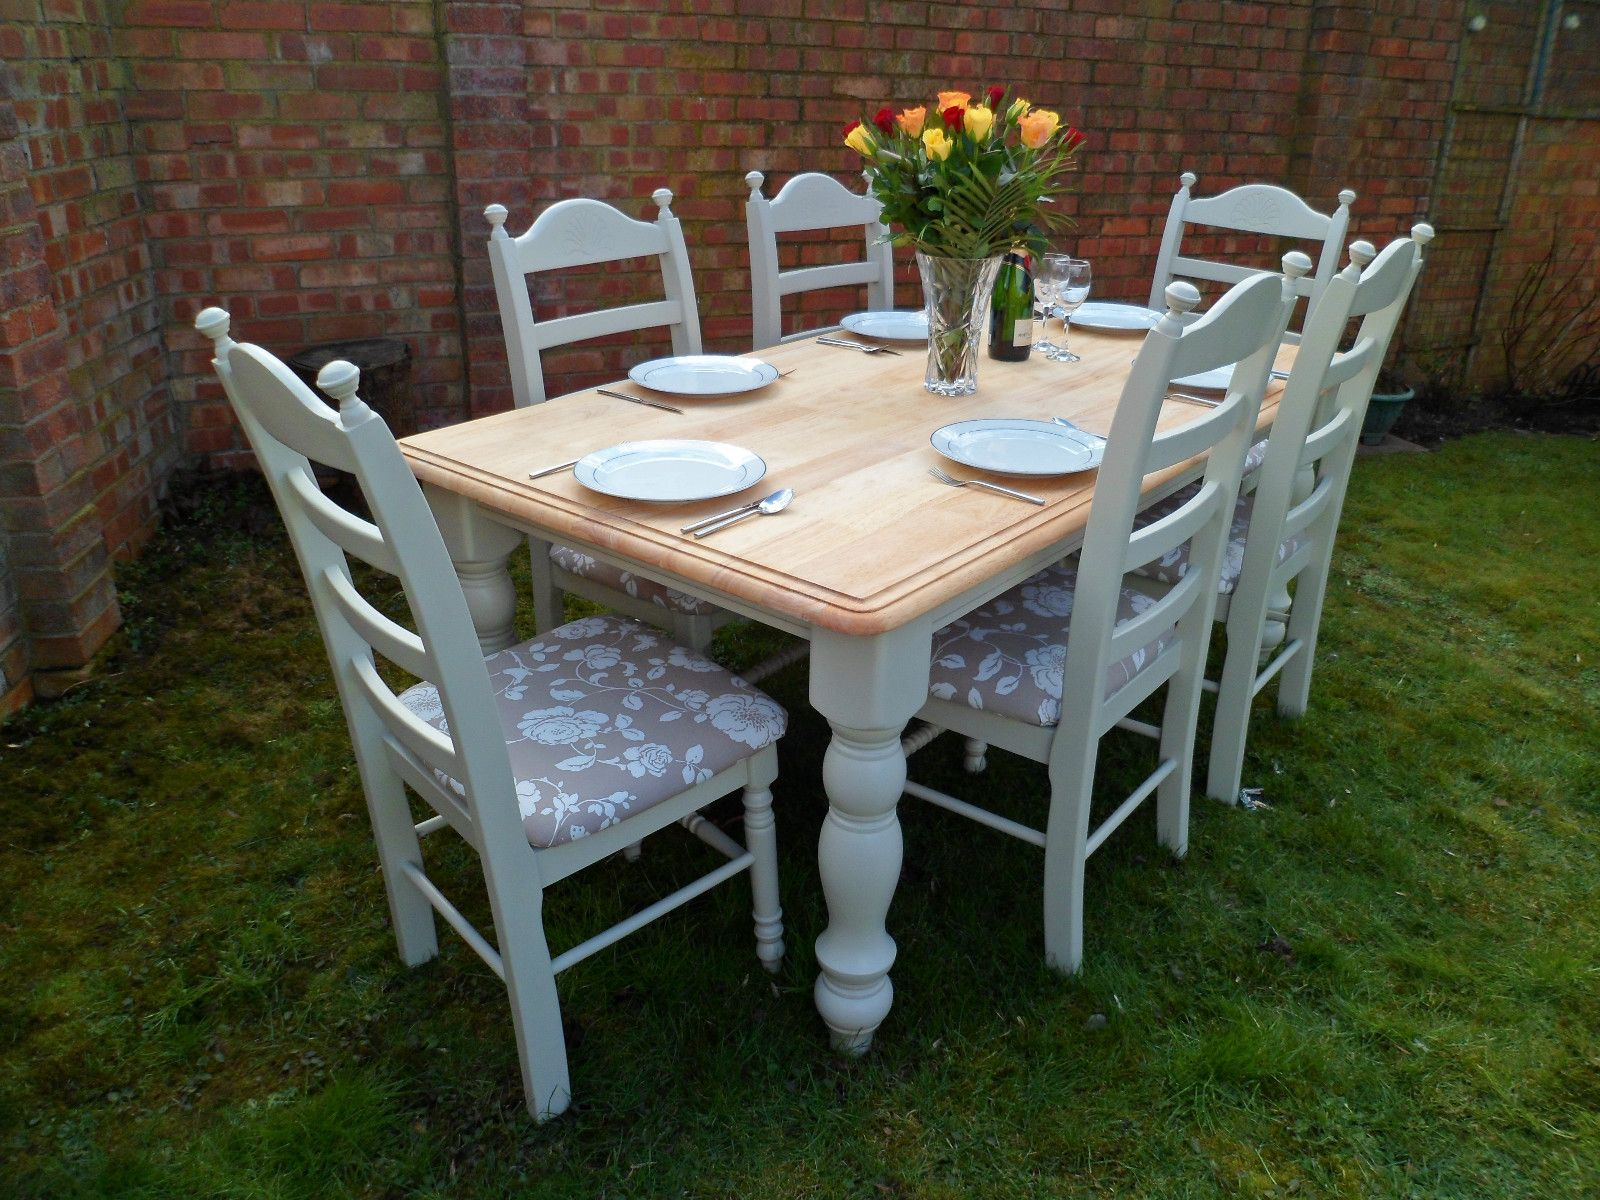 chairs for oak kitchen table chairs for kitchen table Beautiful 6ft Oak Shabby Chic Dining Table And 6 Chairs Painted In Farrow Ball